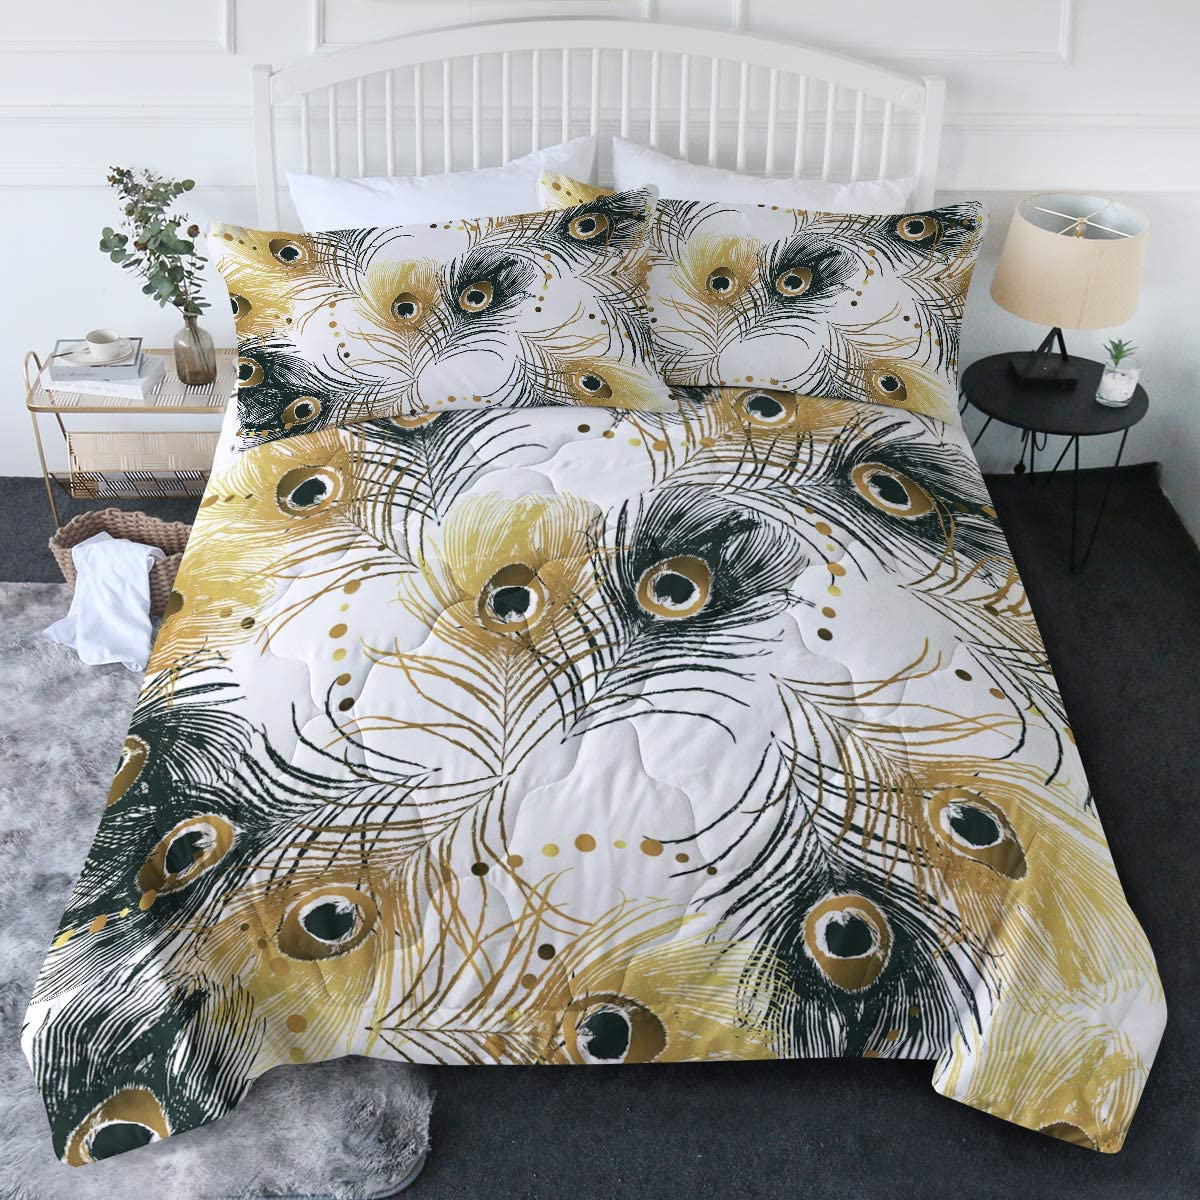 BlessLiving Peacock Feather ふるさと割 Comforter Set Black Chic Pe 信用 and Gold